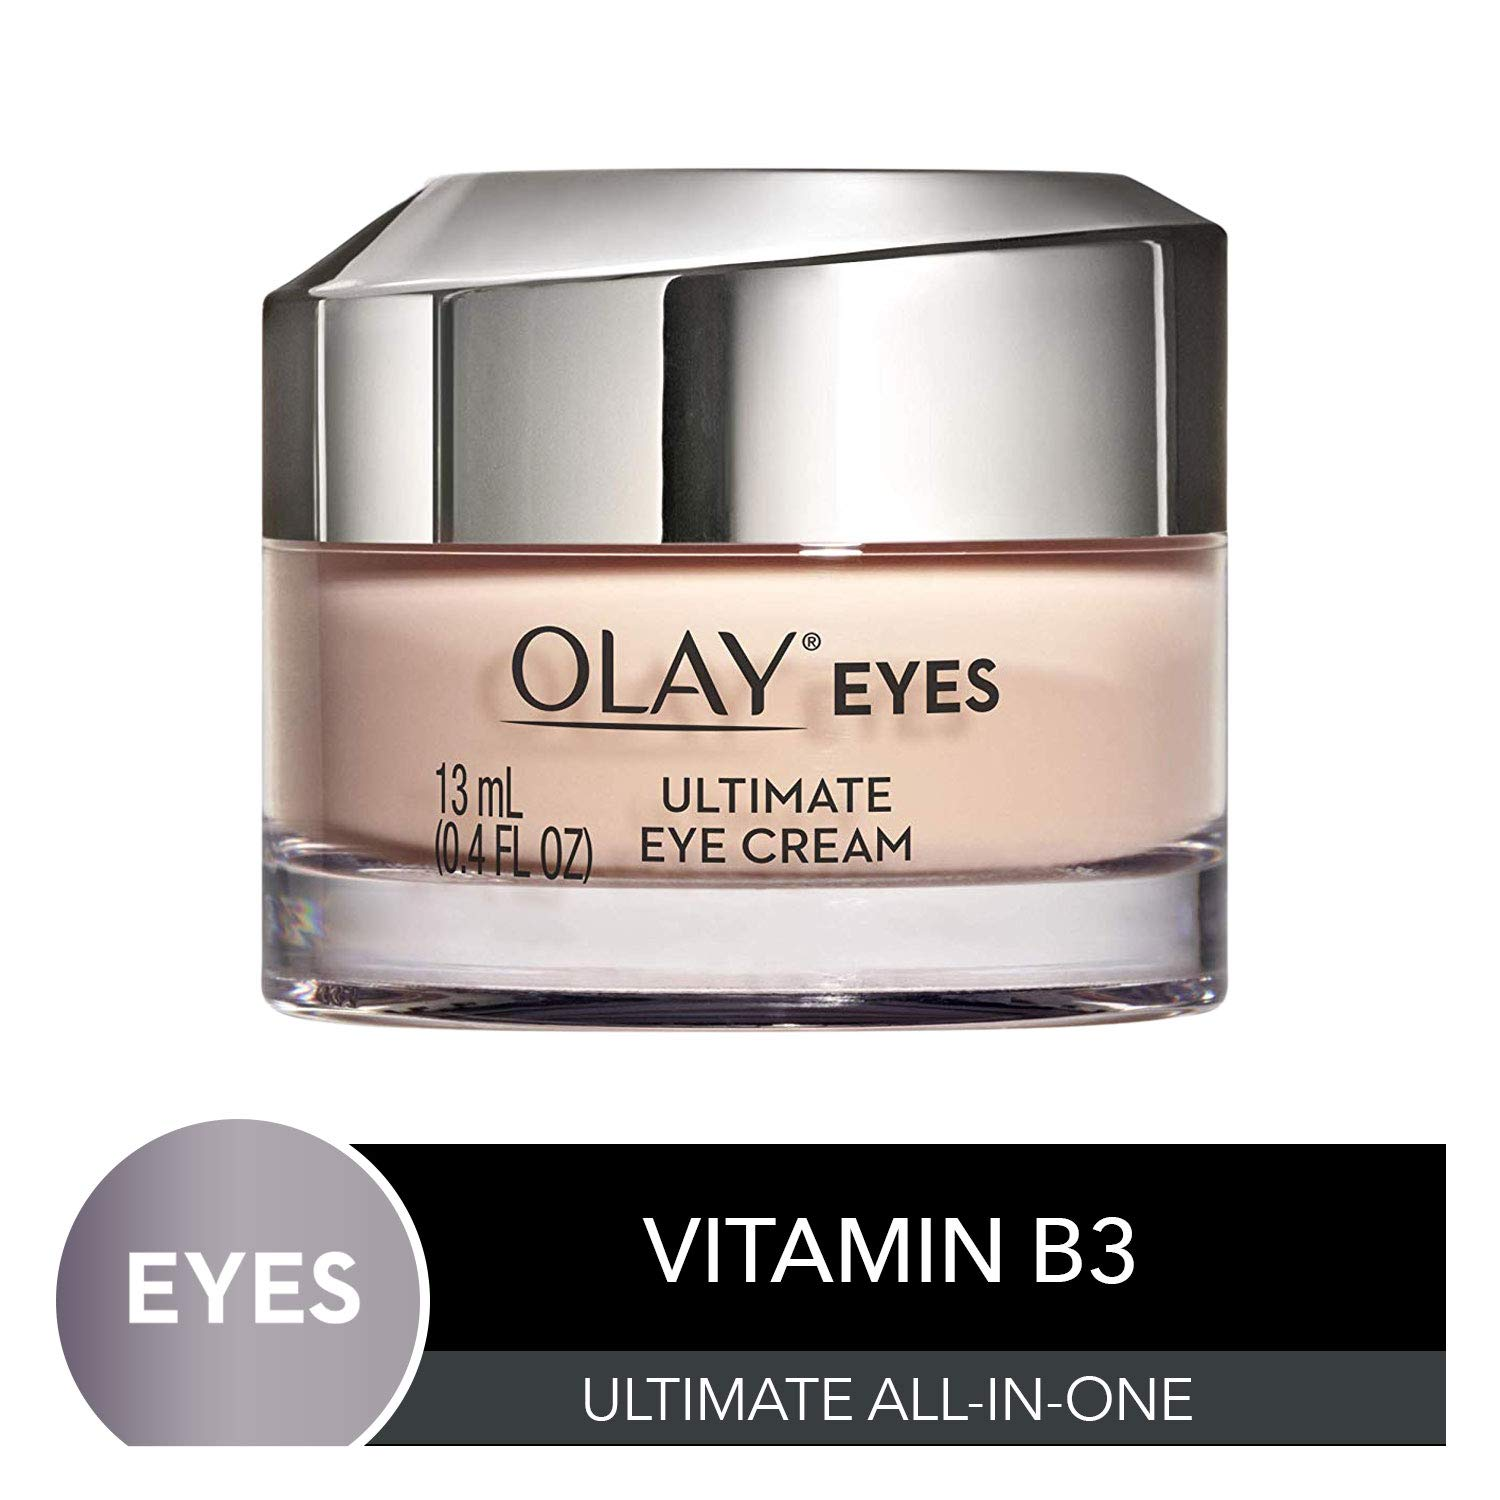 Olay Ultimate Eye Cream for Wrinkles, Puffy Eyes + Dark Circles, 0.4 fl oz by Olay